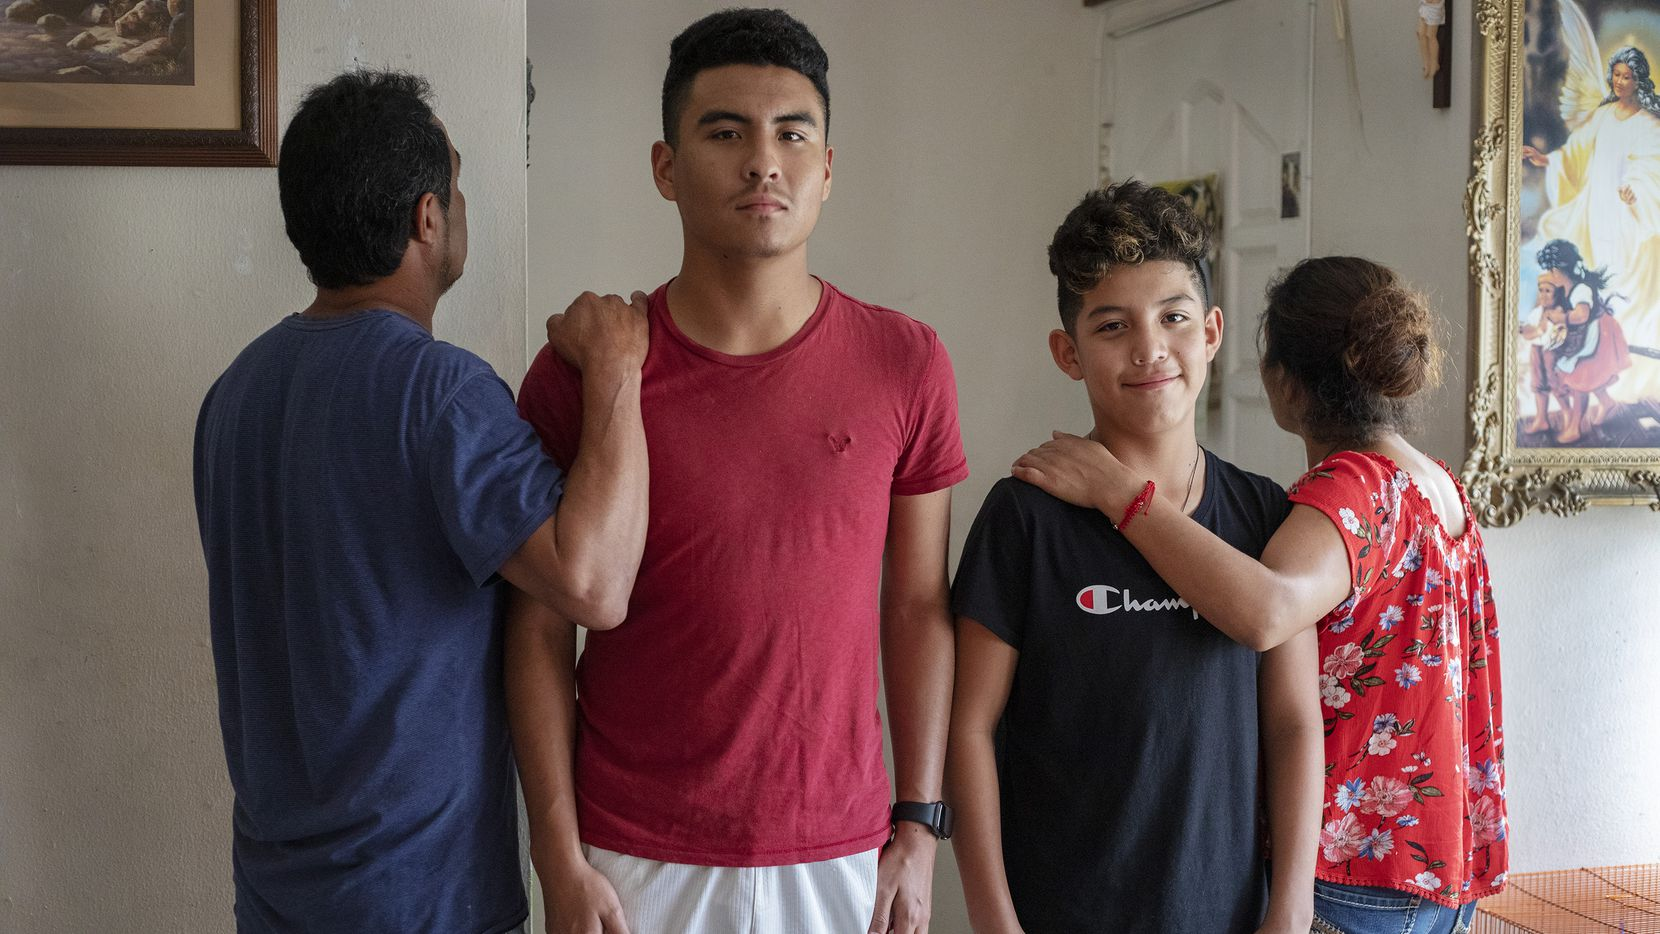 August 30, 2019 Max Jr. and Marco Trejo (center left-right) with their parents at their home in Irving, Texas.  ICE knocked on the door to the family home but they didn't answer.  Soon after Max Trejo was detained by ICE in the neighborhood and later released. Max Jr. suffered symptoms of stress according to family's doctor, and Marco cried at night during his father's detention. The family is awaiting a court hearing to determine if Max Sr. will be deported.